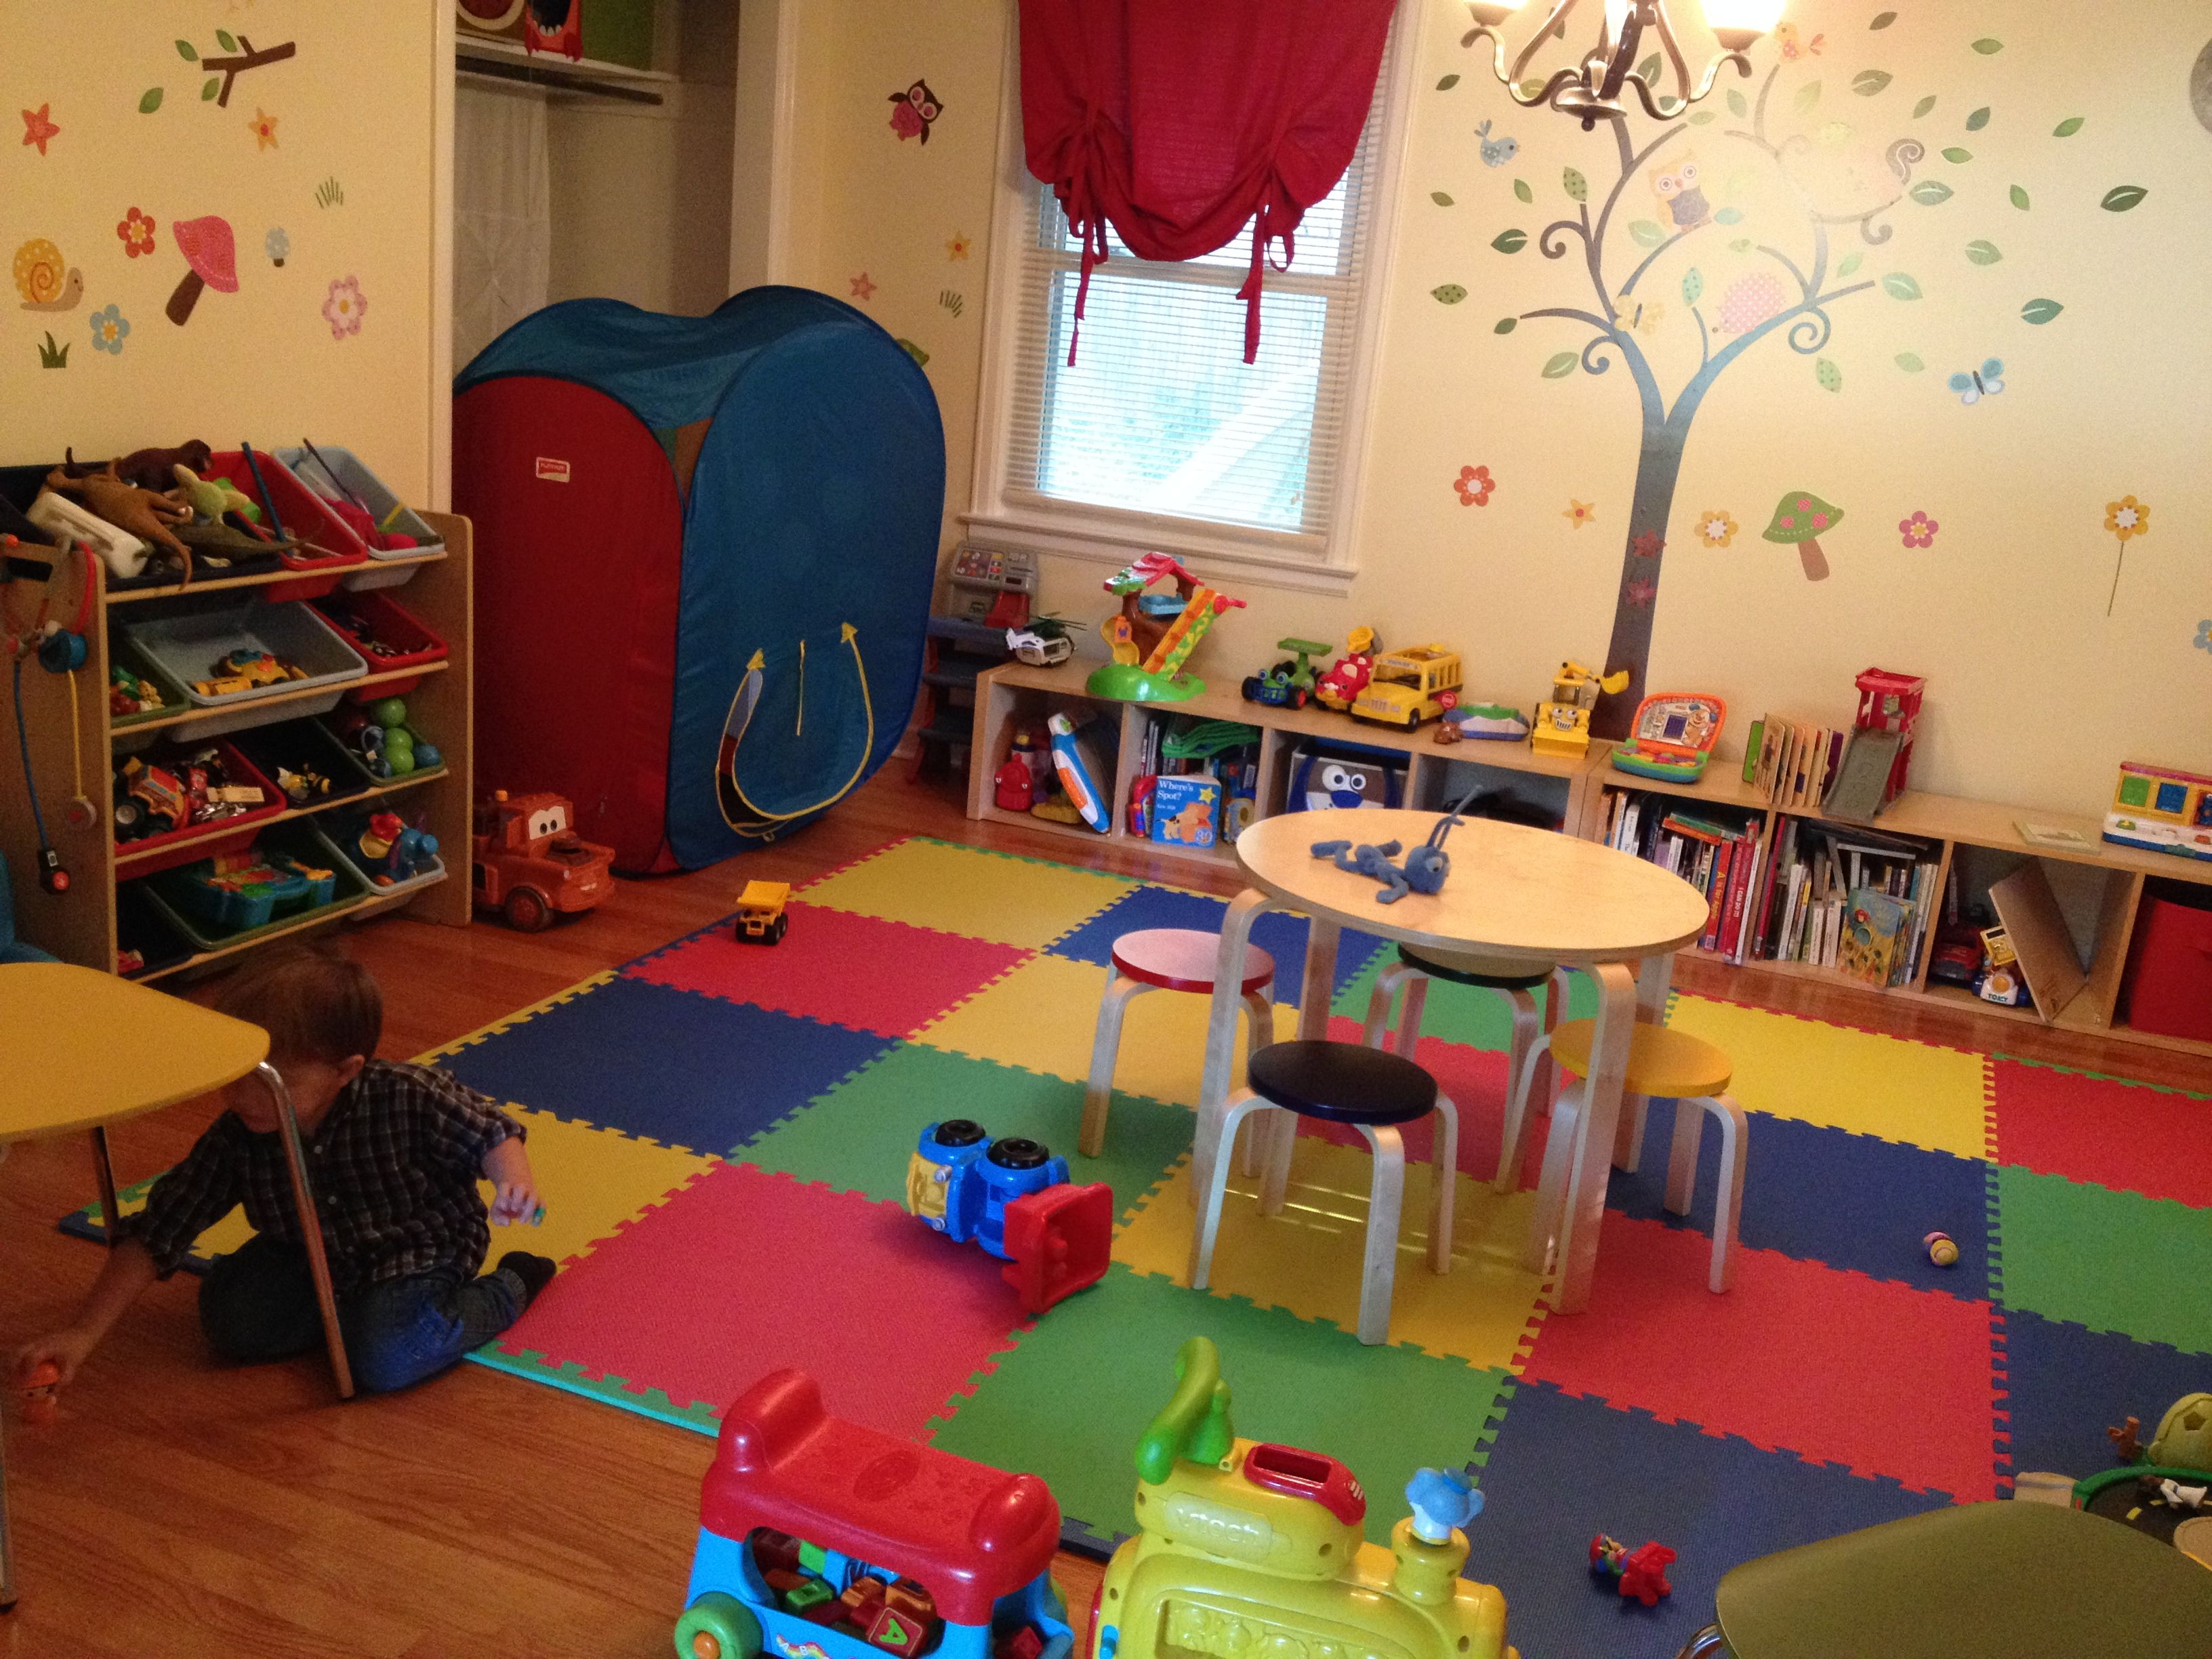 Affordable Playroom Foam Floor Tiles From Home Depot Book